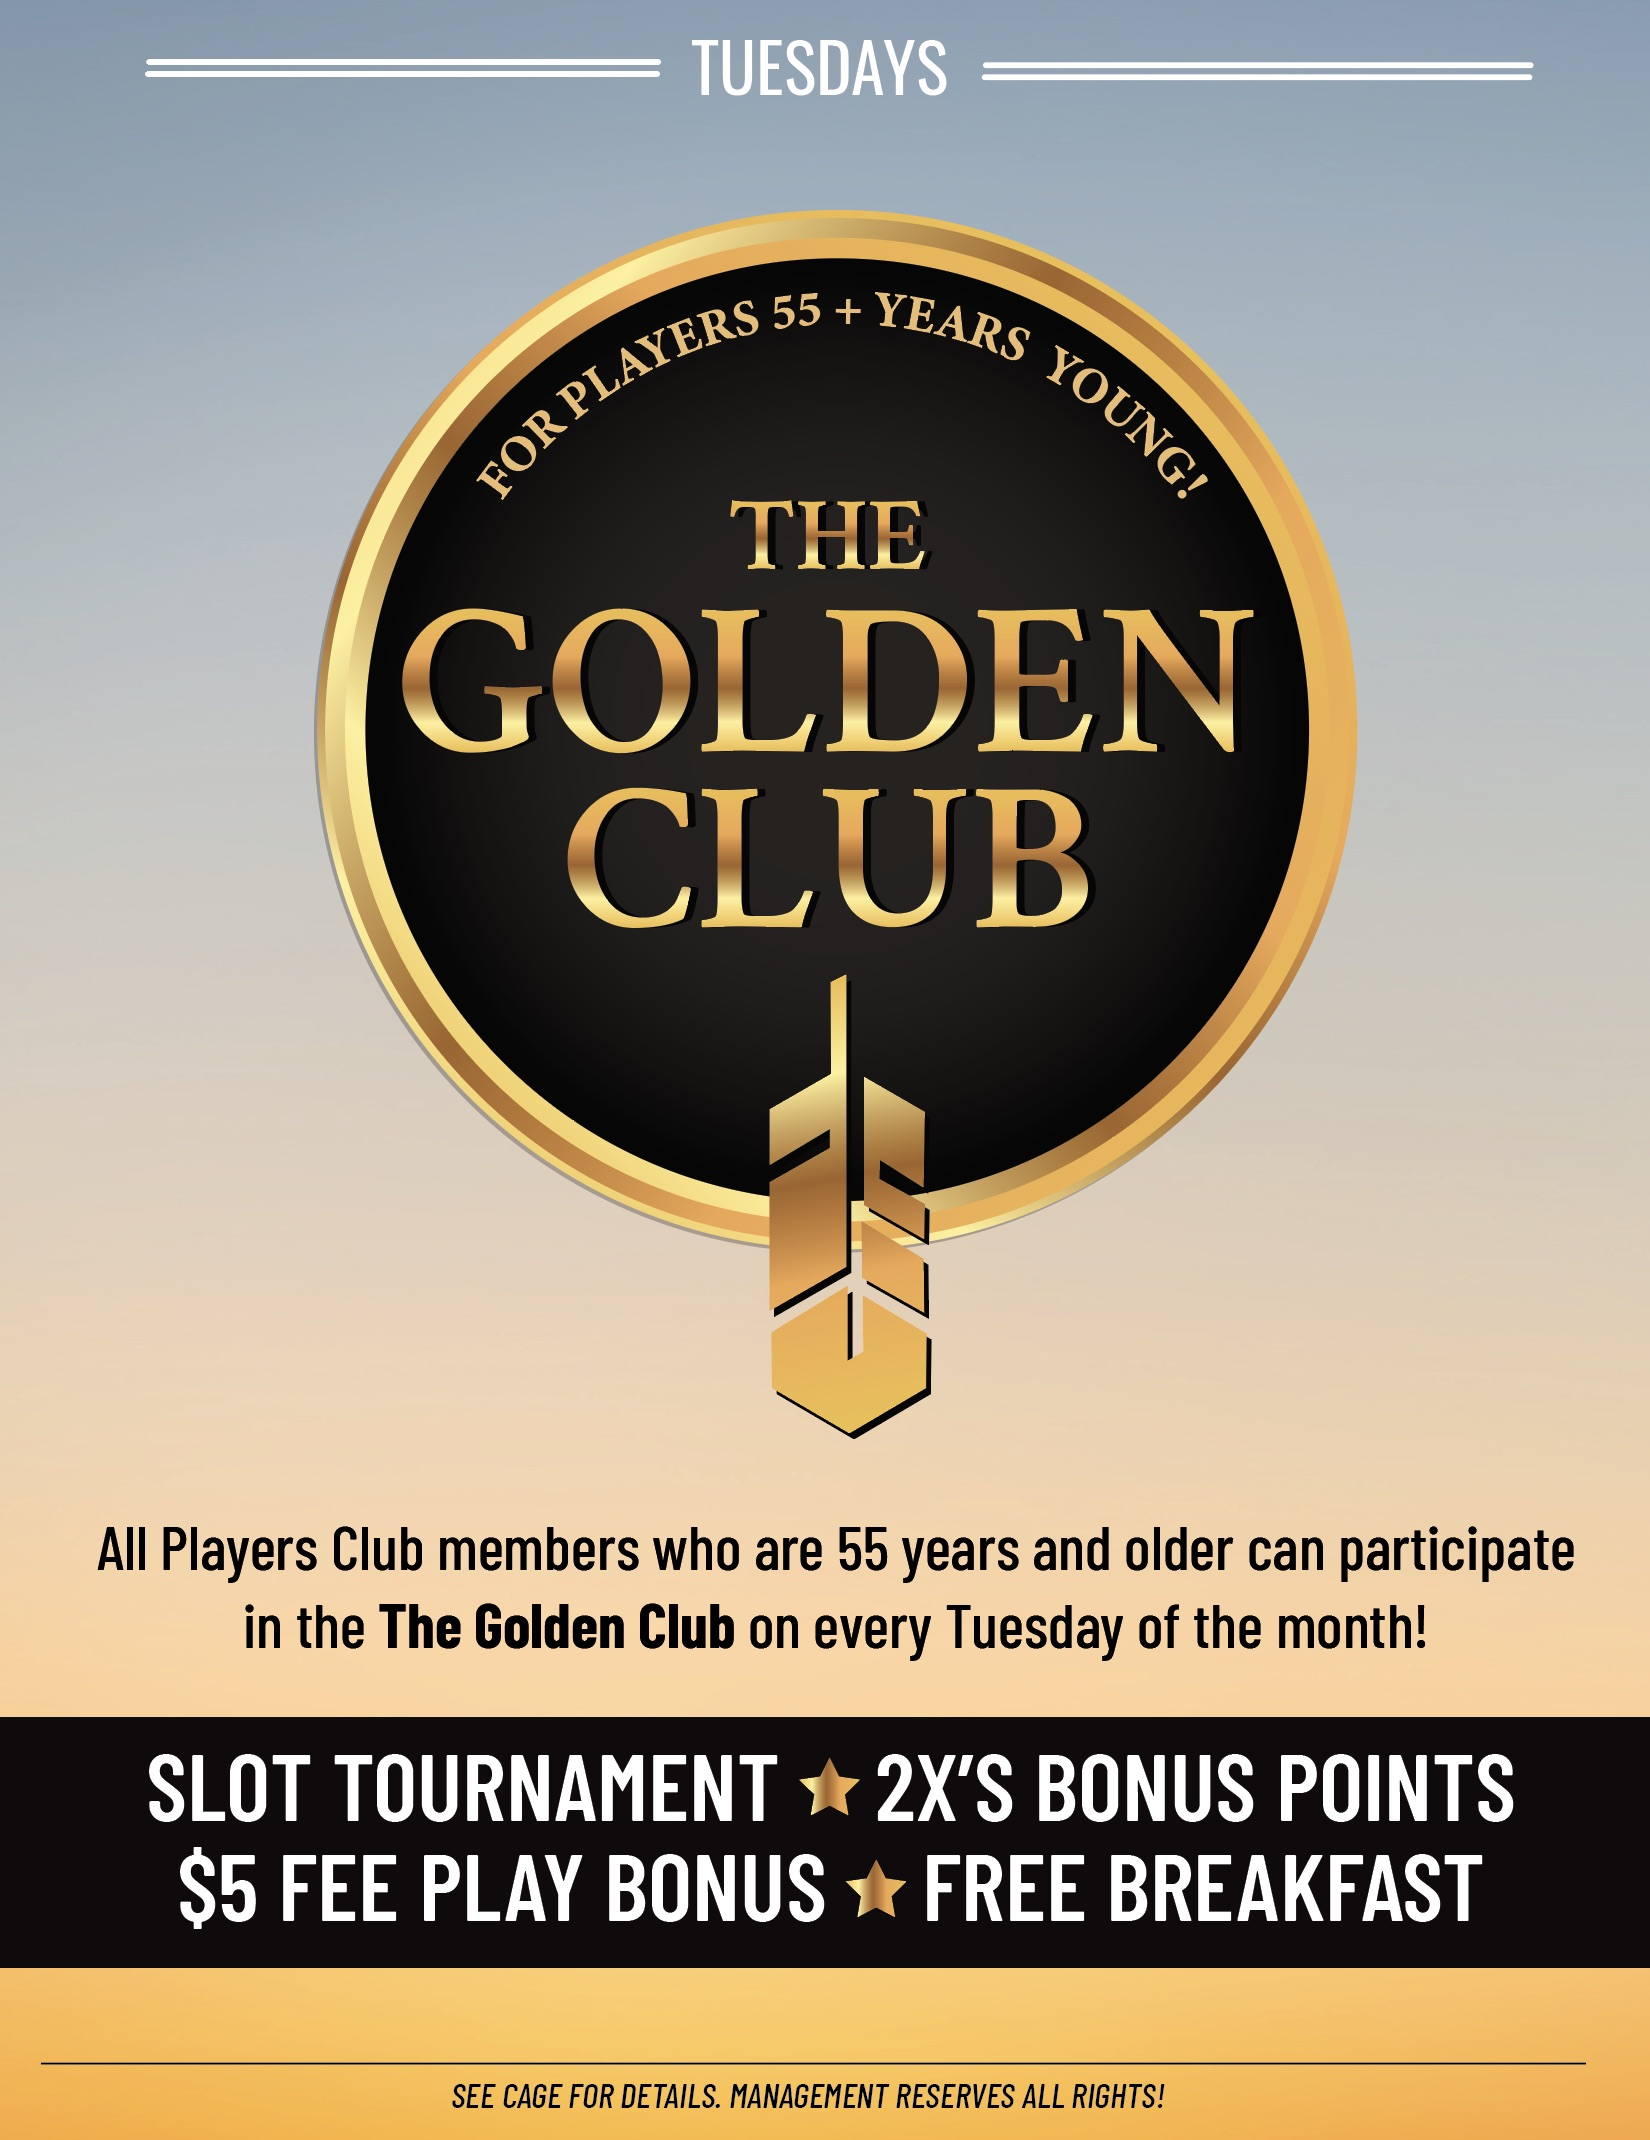 golden club - 55 years and older